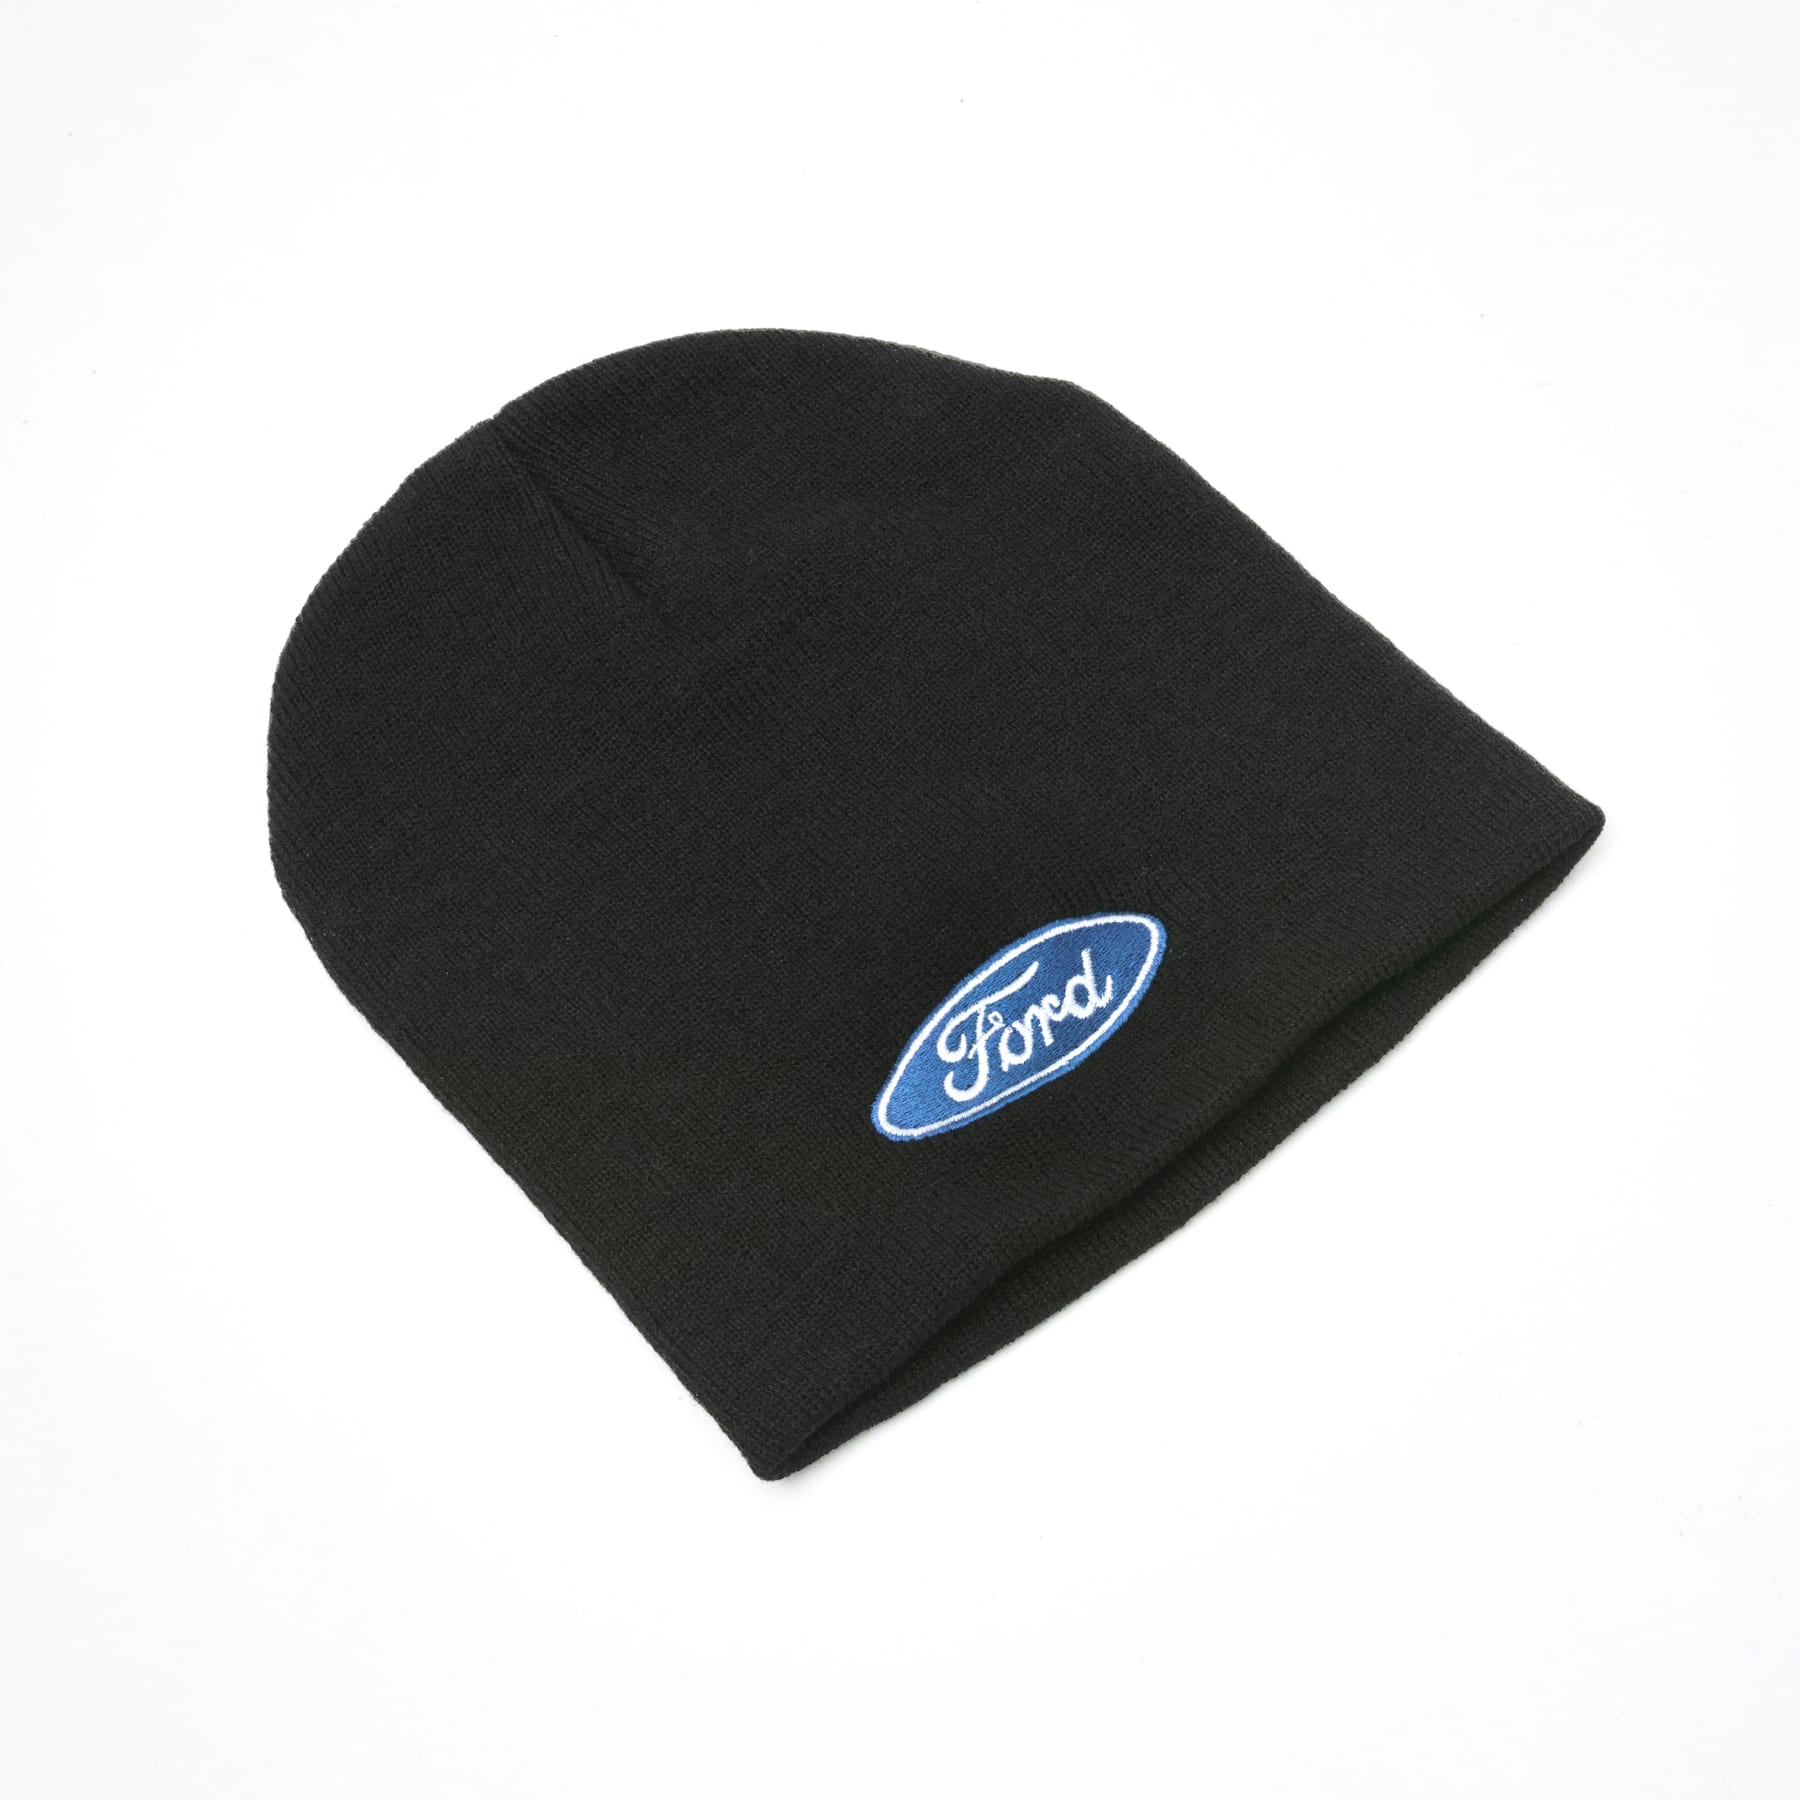 Official Licensed Ford Merchandise Beanie Hat - Black with Ford logo